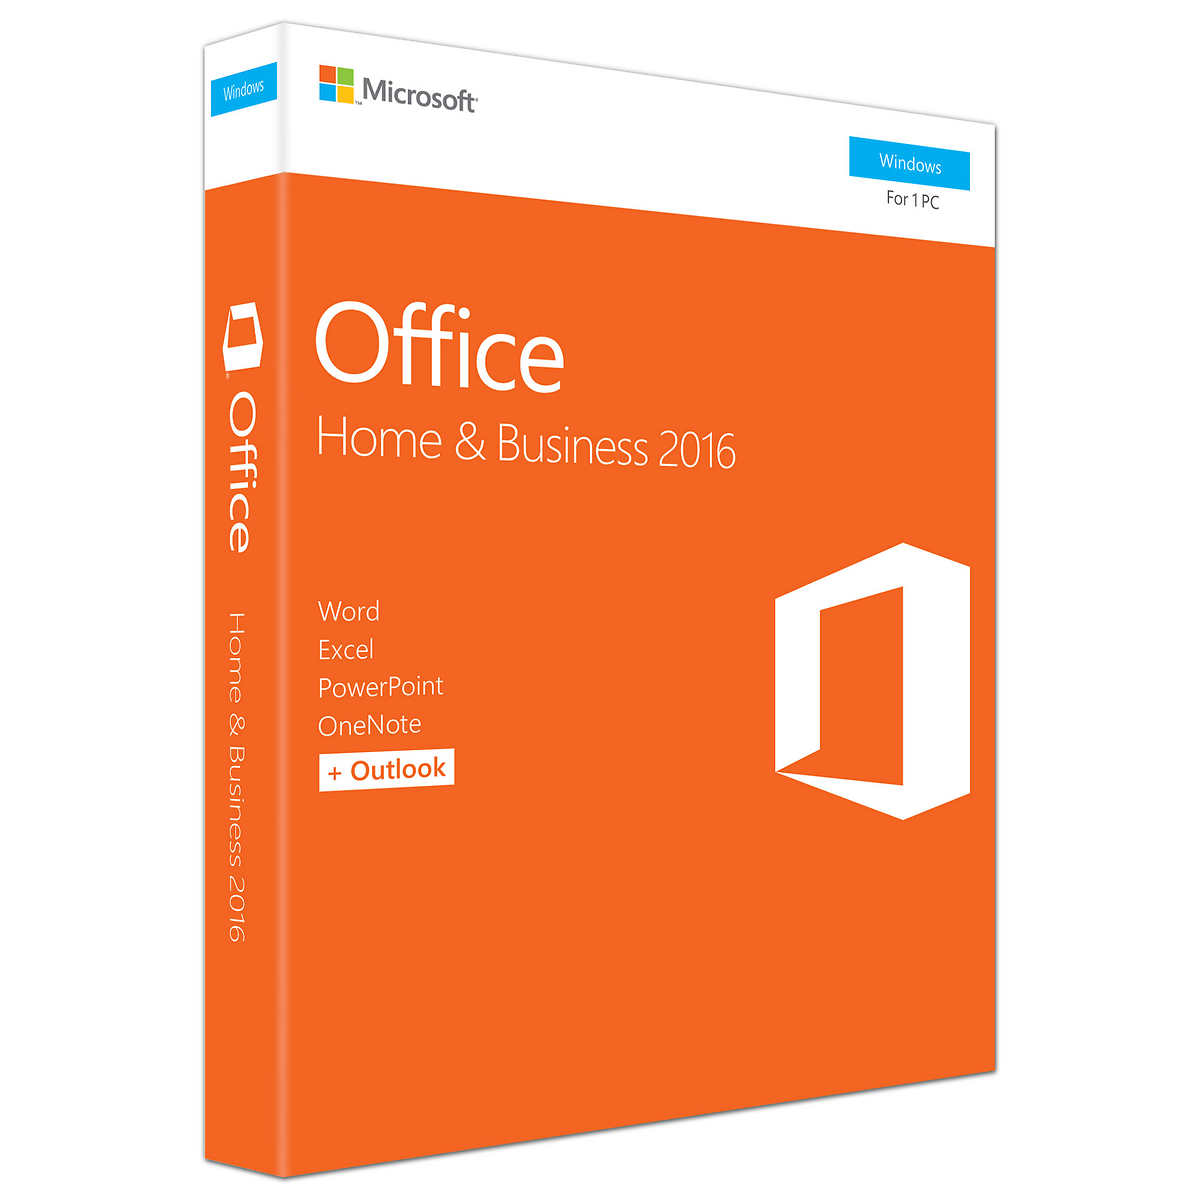 Microsoft Office Home and Business 2016, Product Key Card